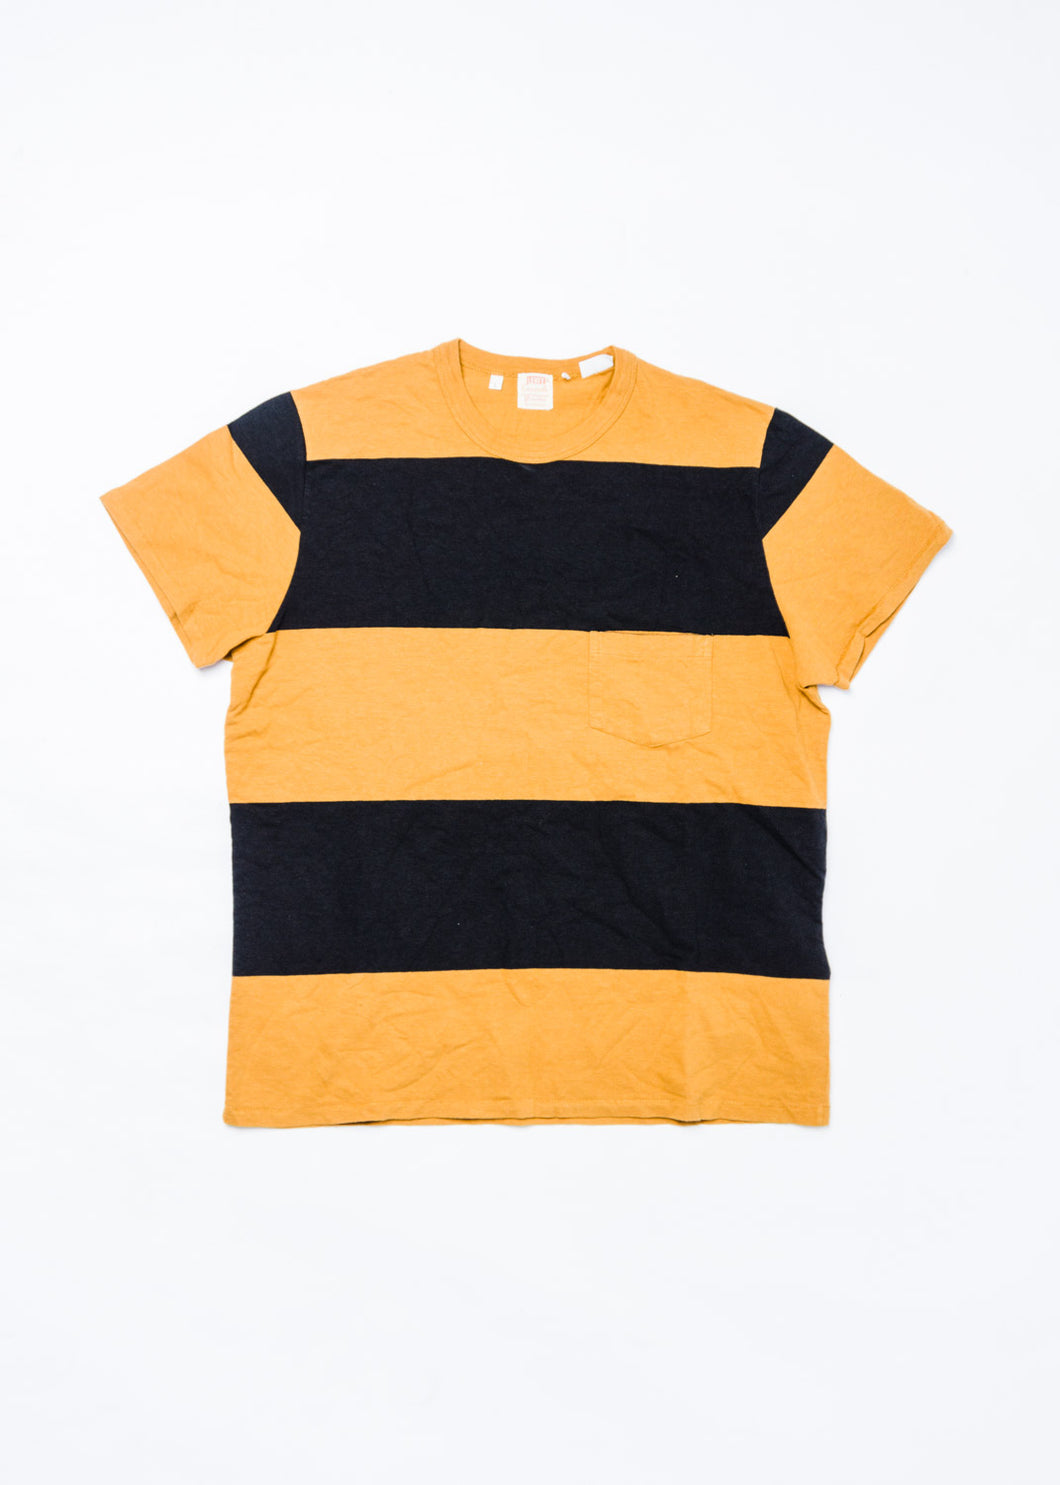 LEVIS VINTAGE CLOTHING 1960S CASUAL STRIPE TEE